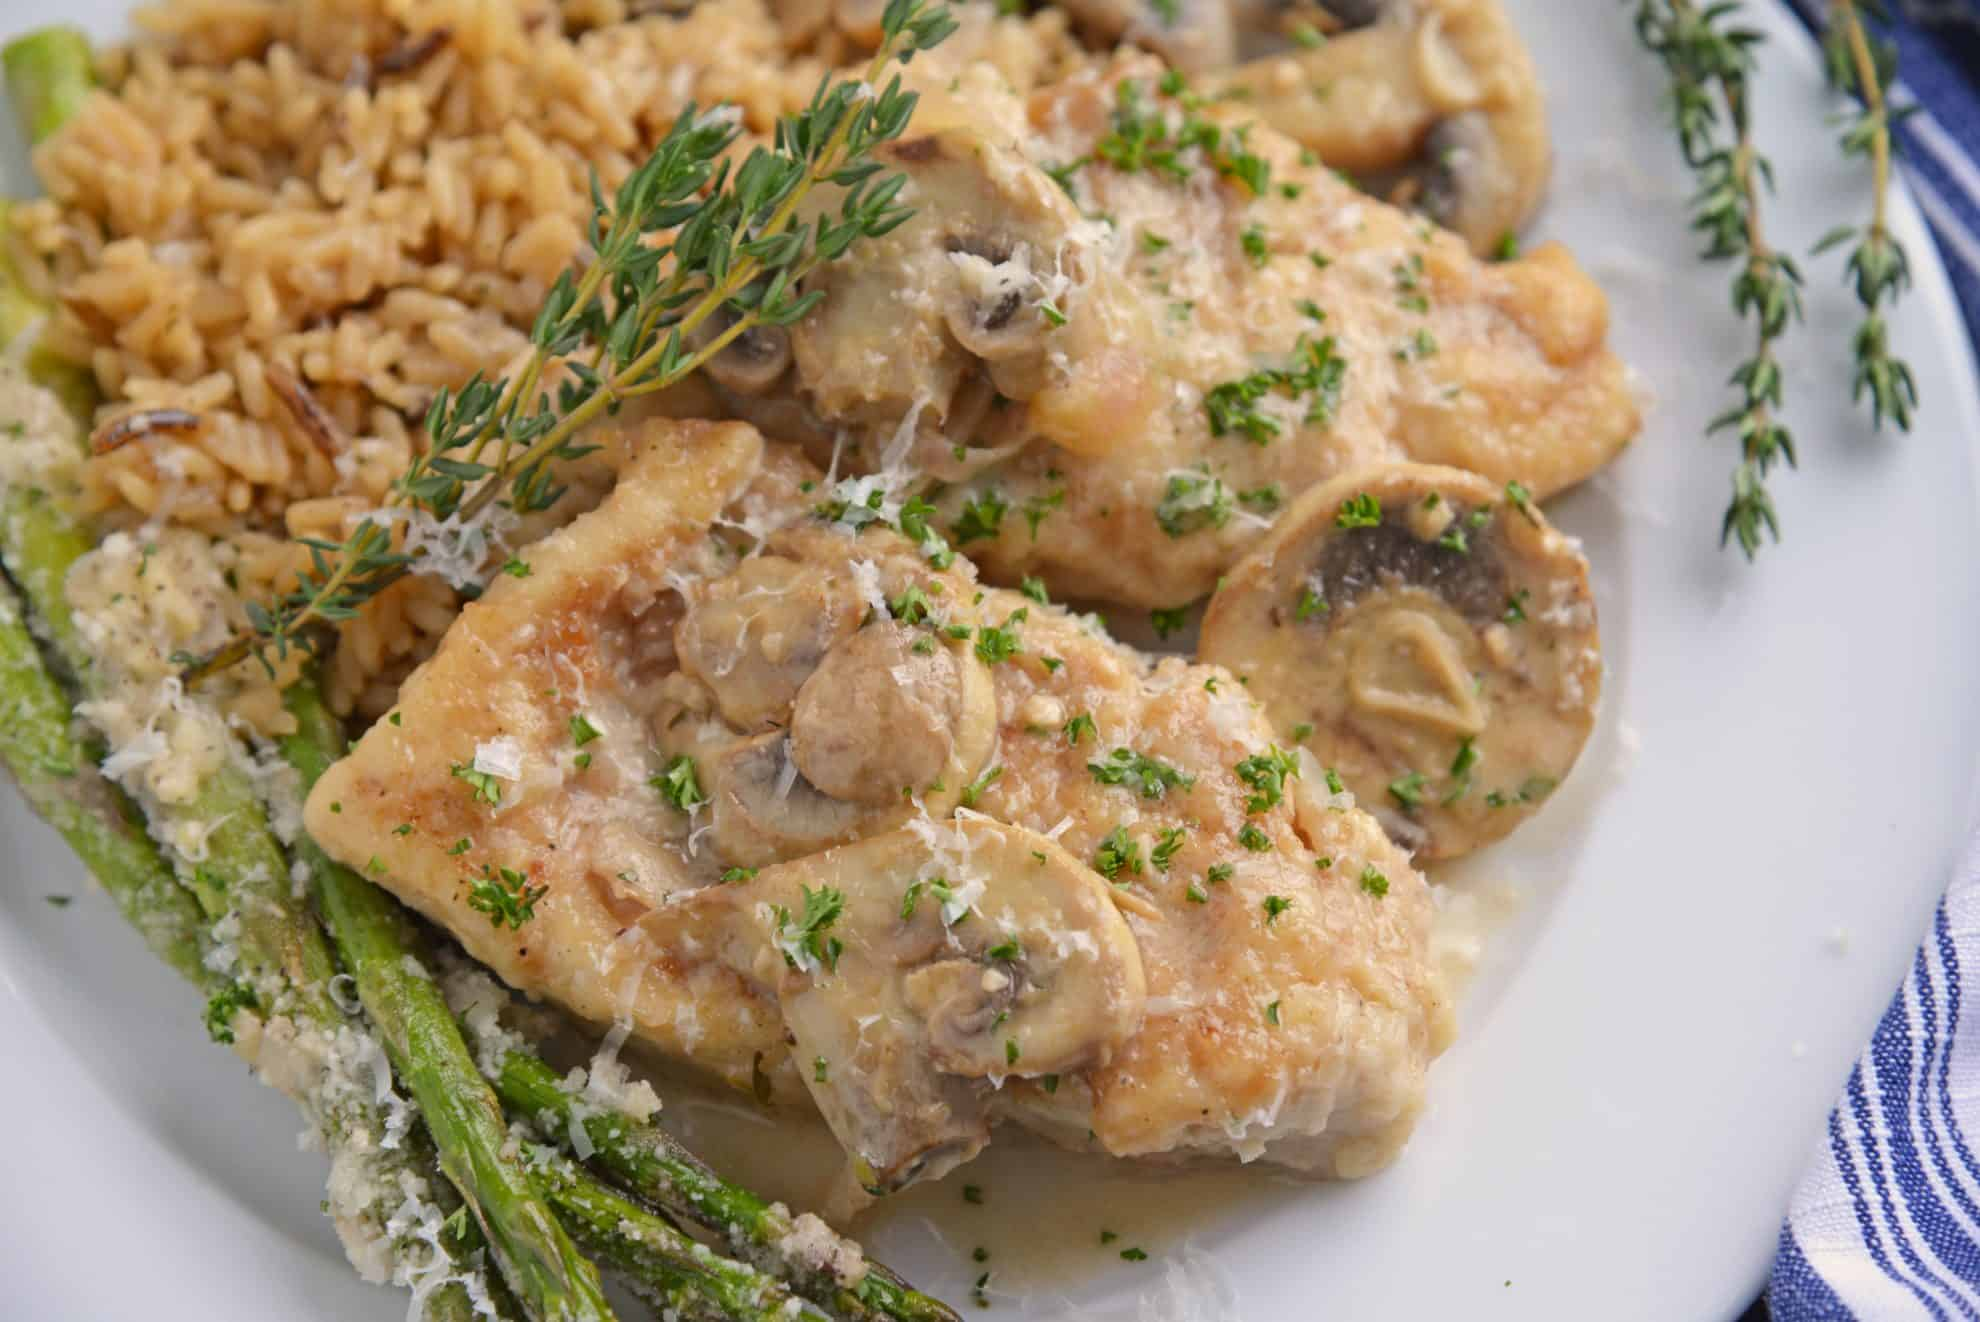 Creamy mushroom chicken with asparagus